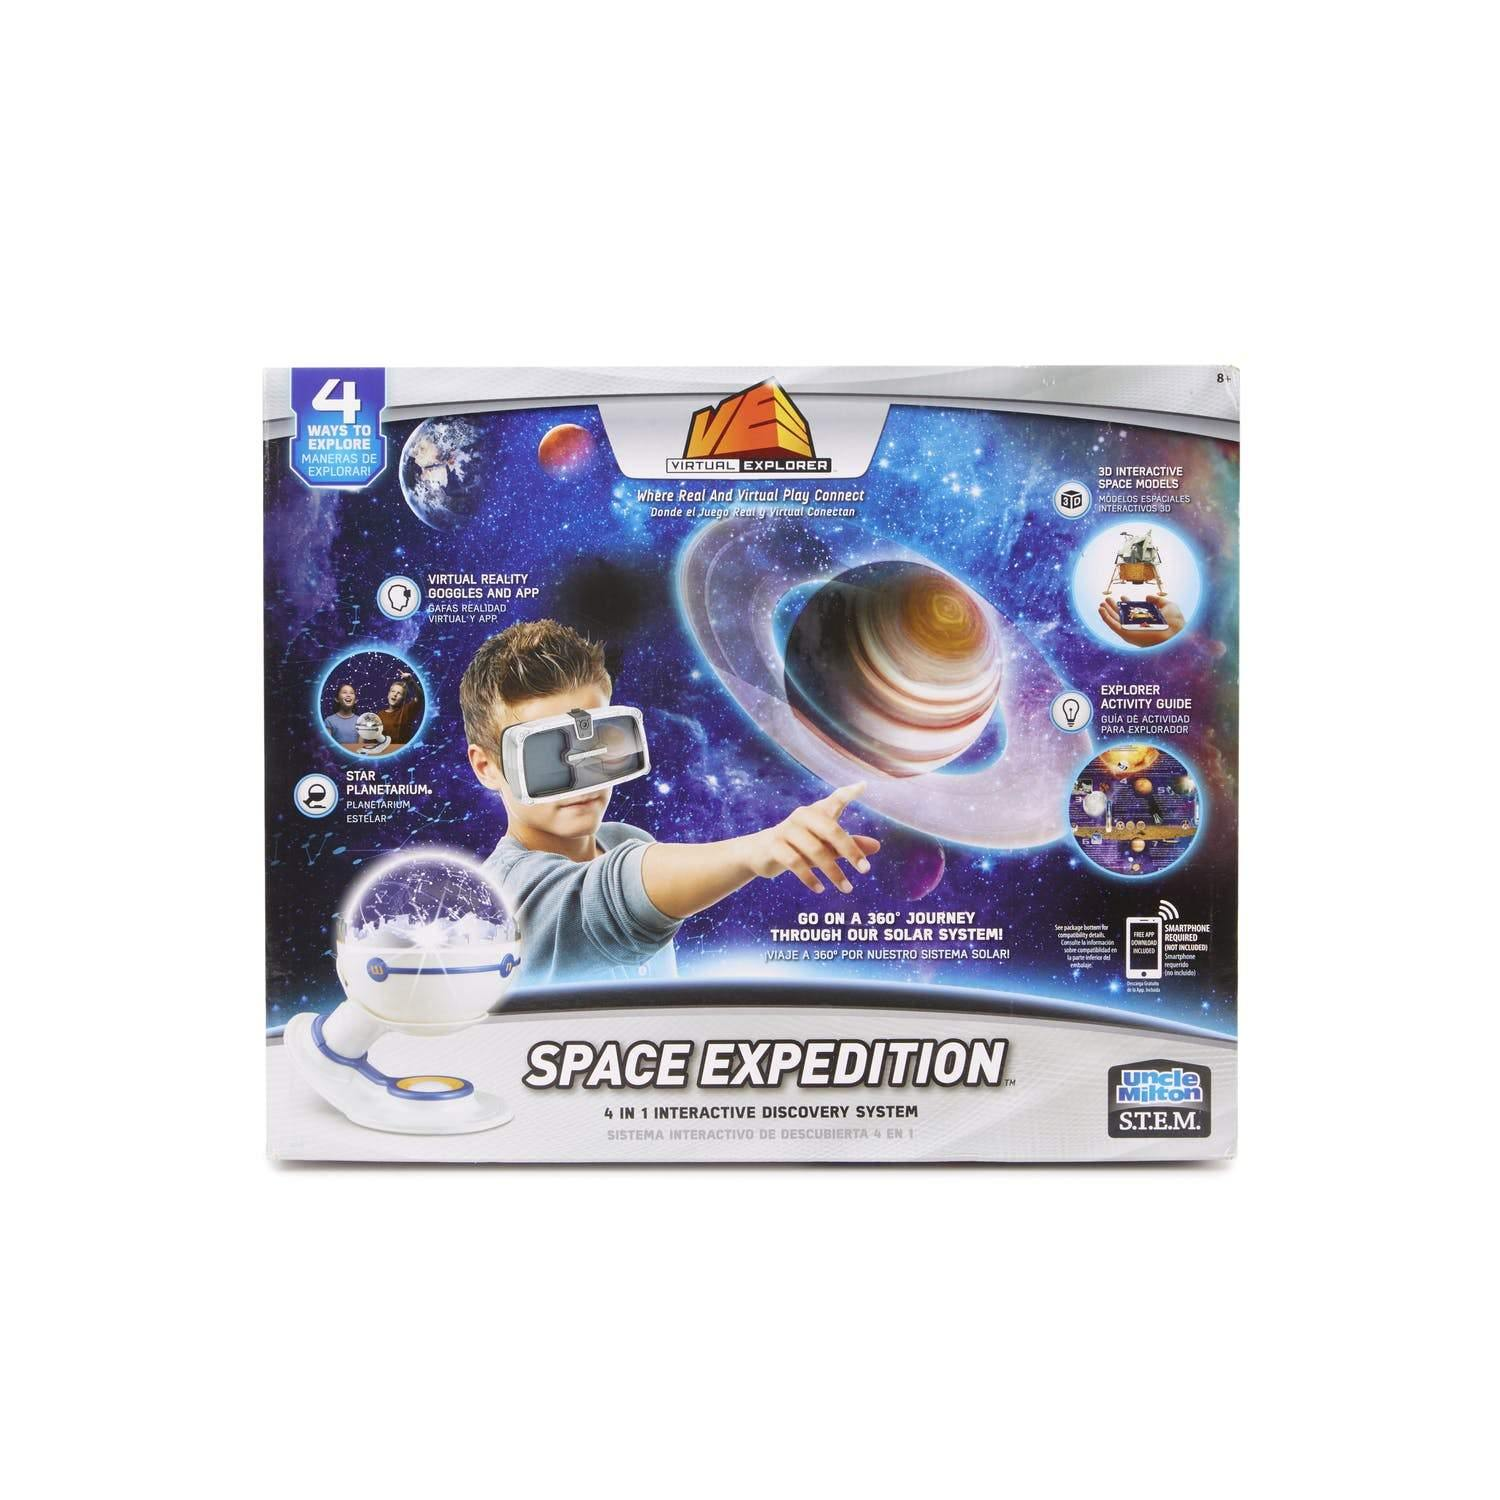 Space Expedition Virtual Reality Kit